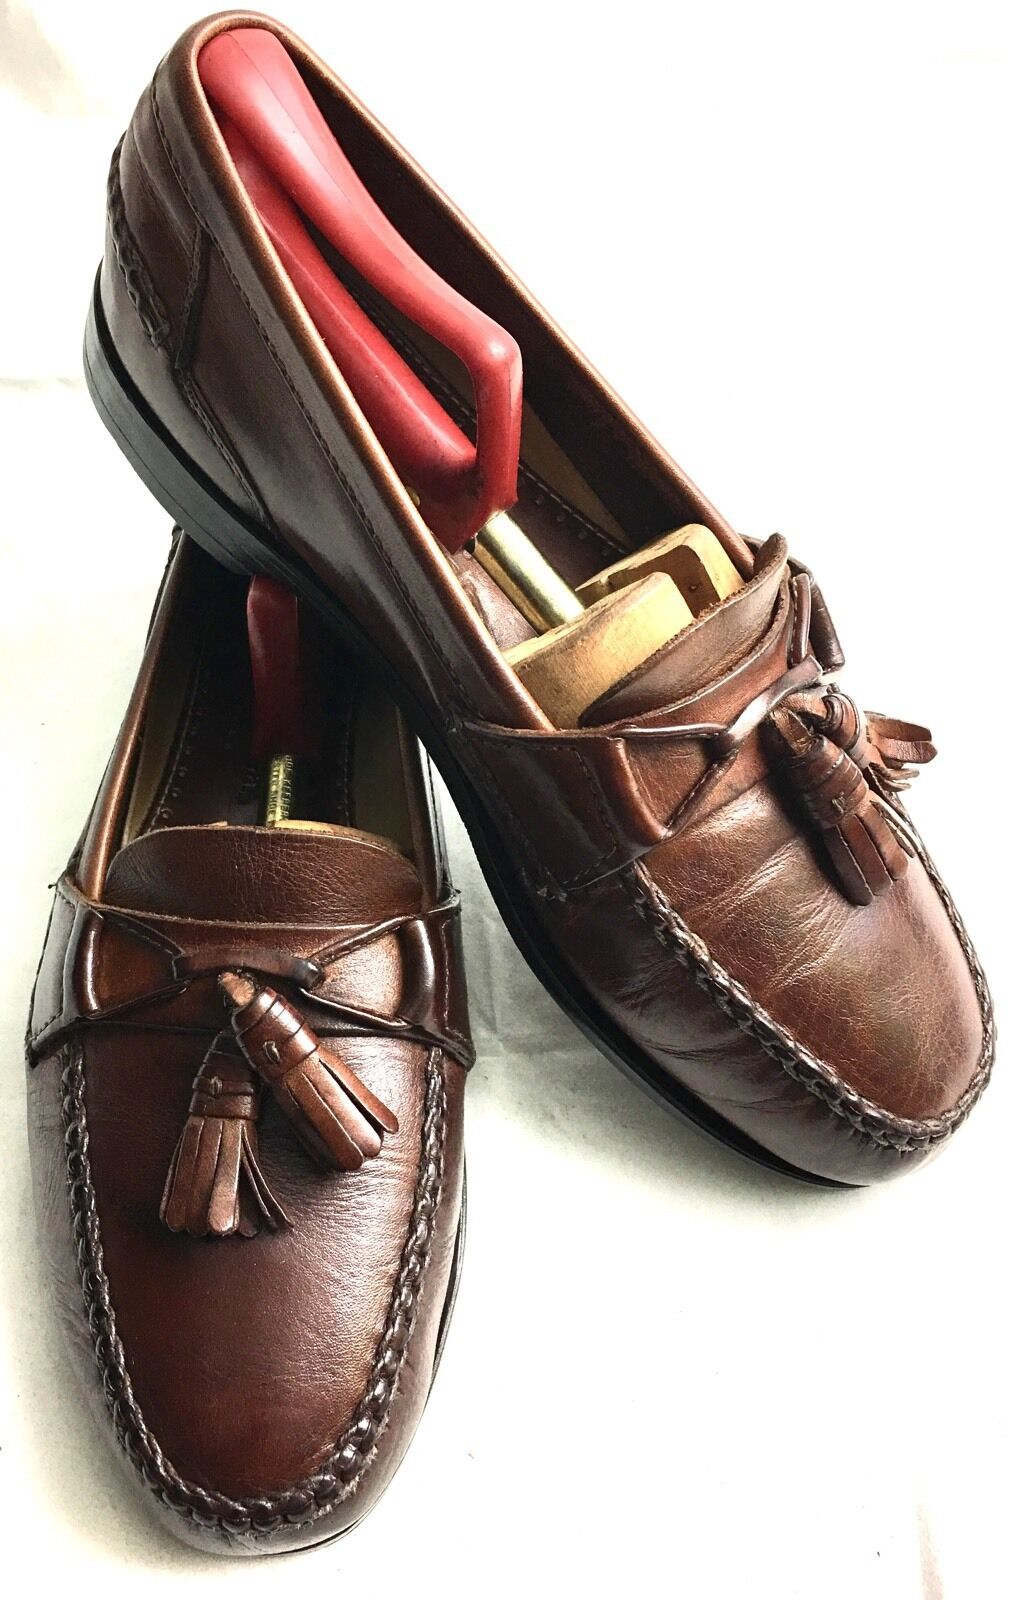 Johnston & Murphy Passport Loafers Dress Casual Shoes Brown Leather Tassels 10 M